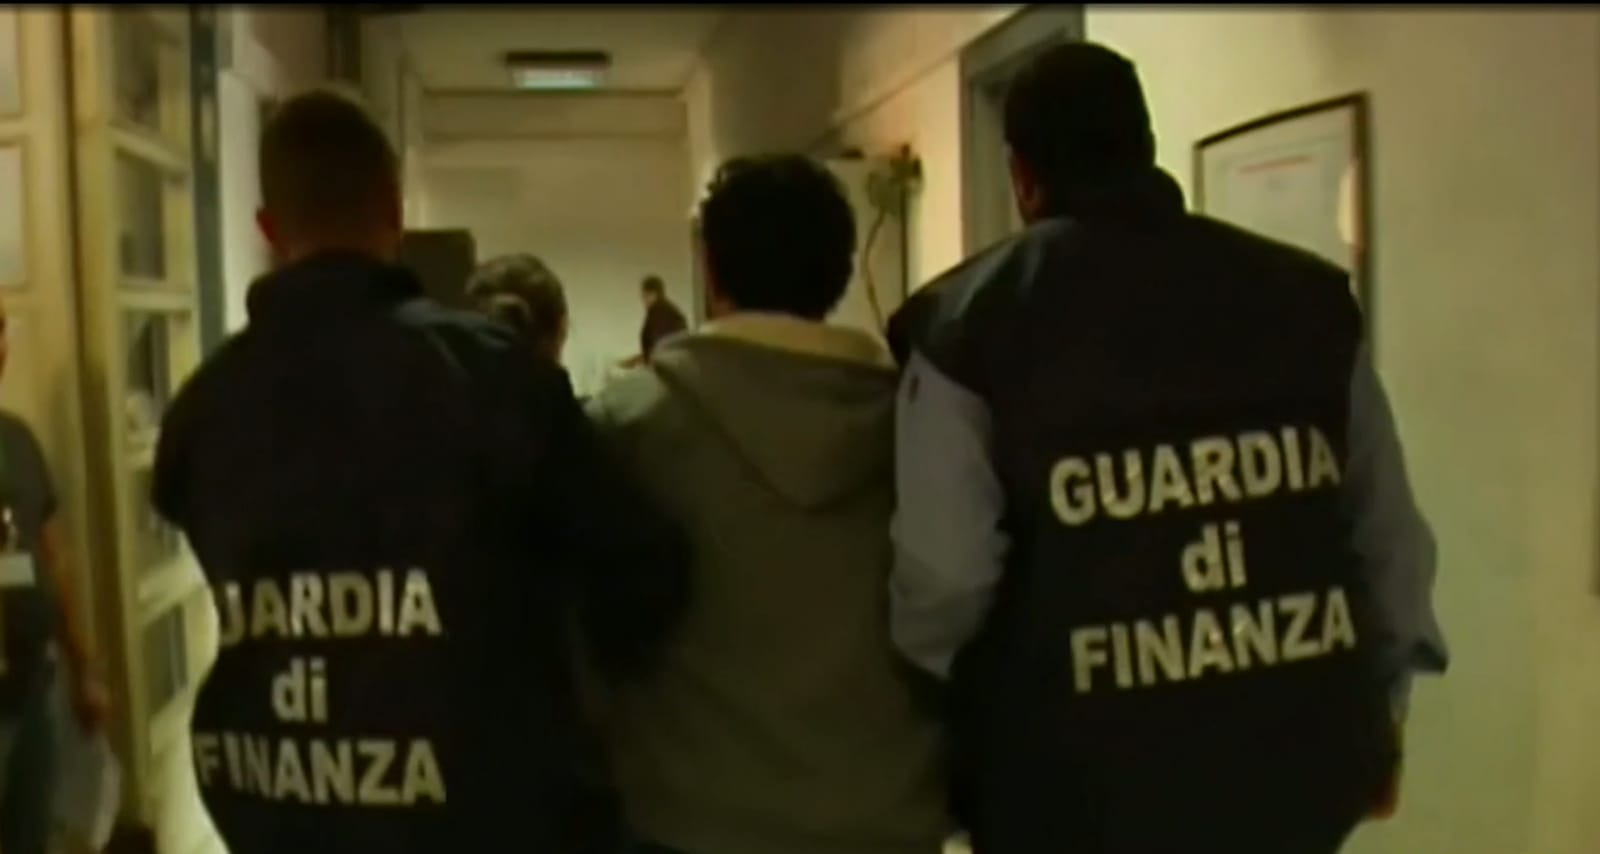 One of the suspects is arrested. (Photo: Guardia di Finanza)